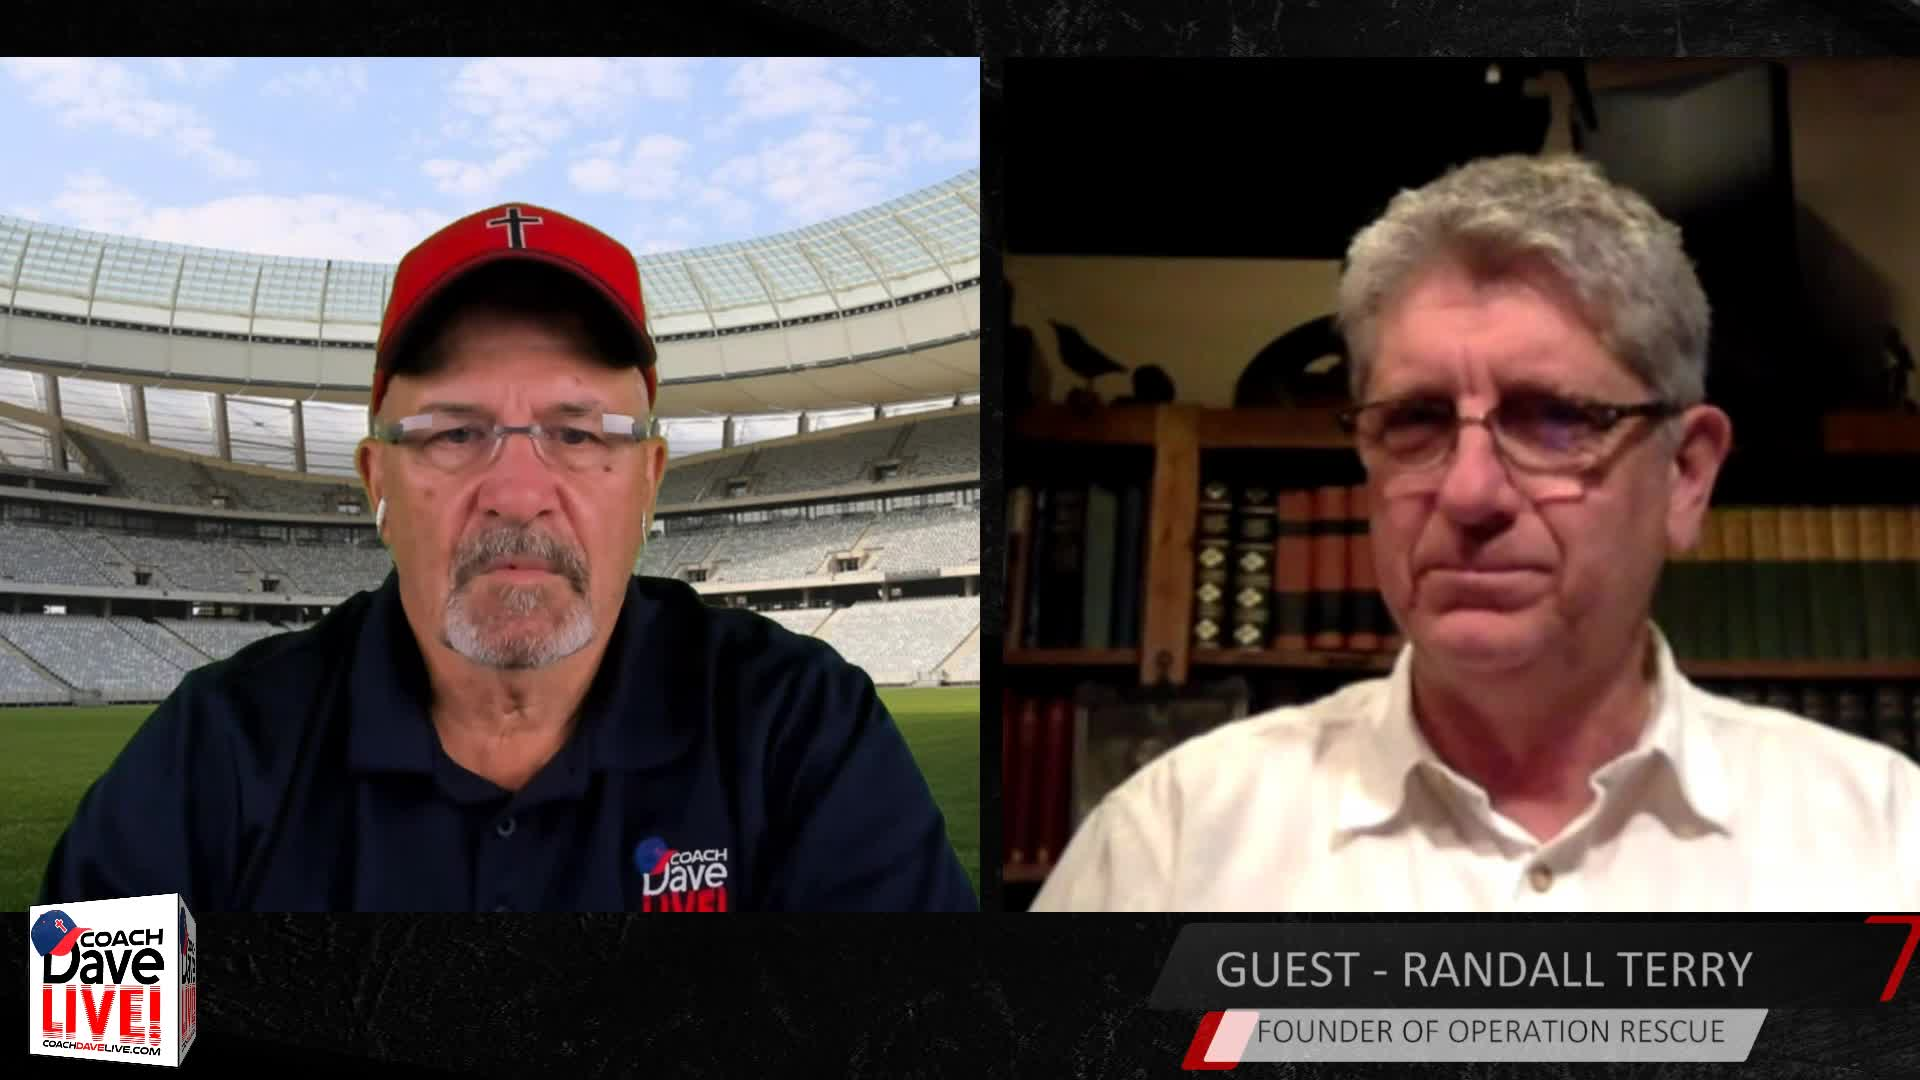 Coach and Randall Terry | Coach Dave LIVE | 7-14-2020